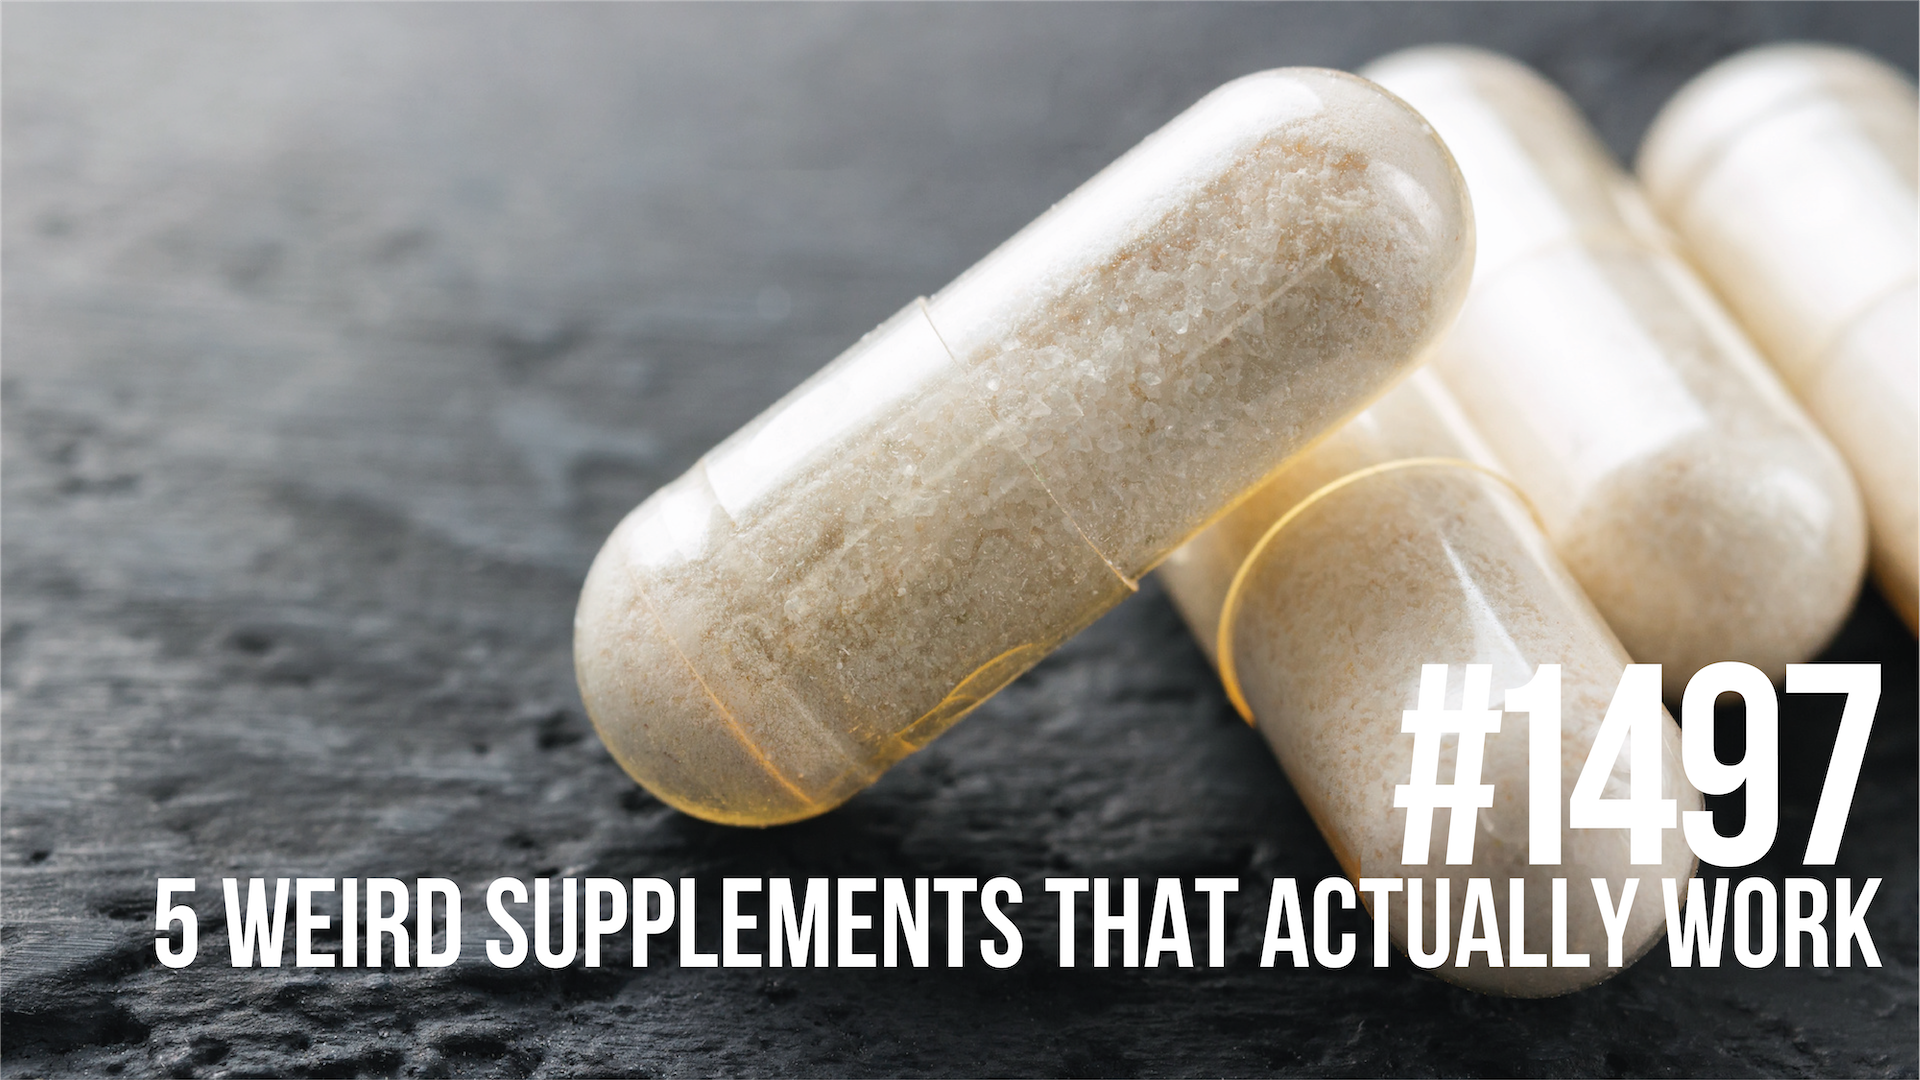 1497: Five Weird Supplements That Actually Work